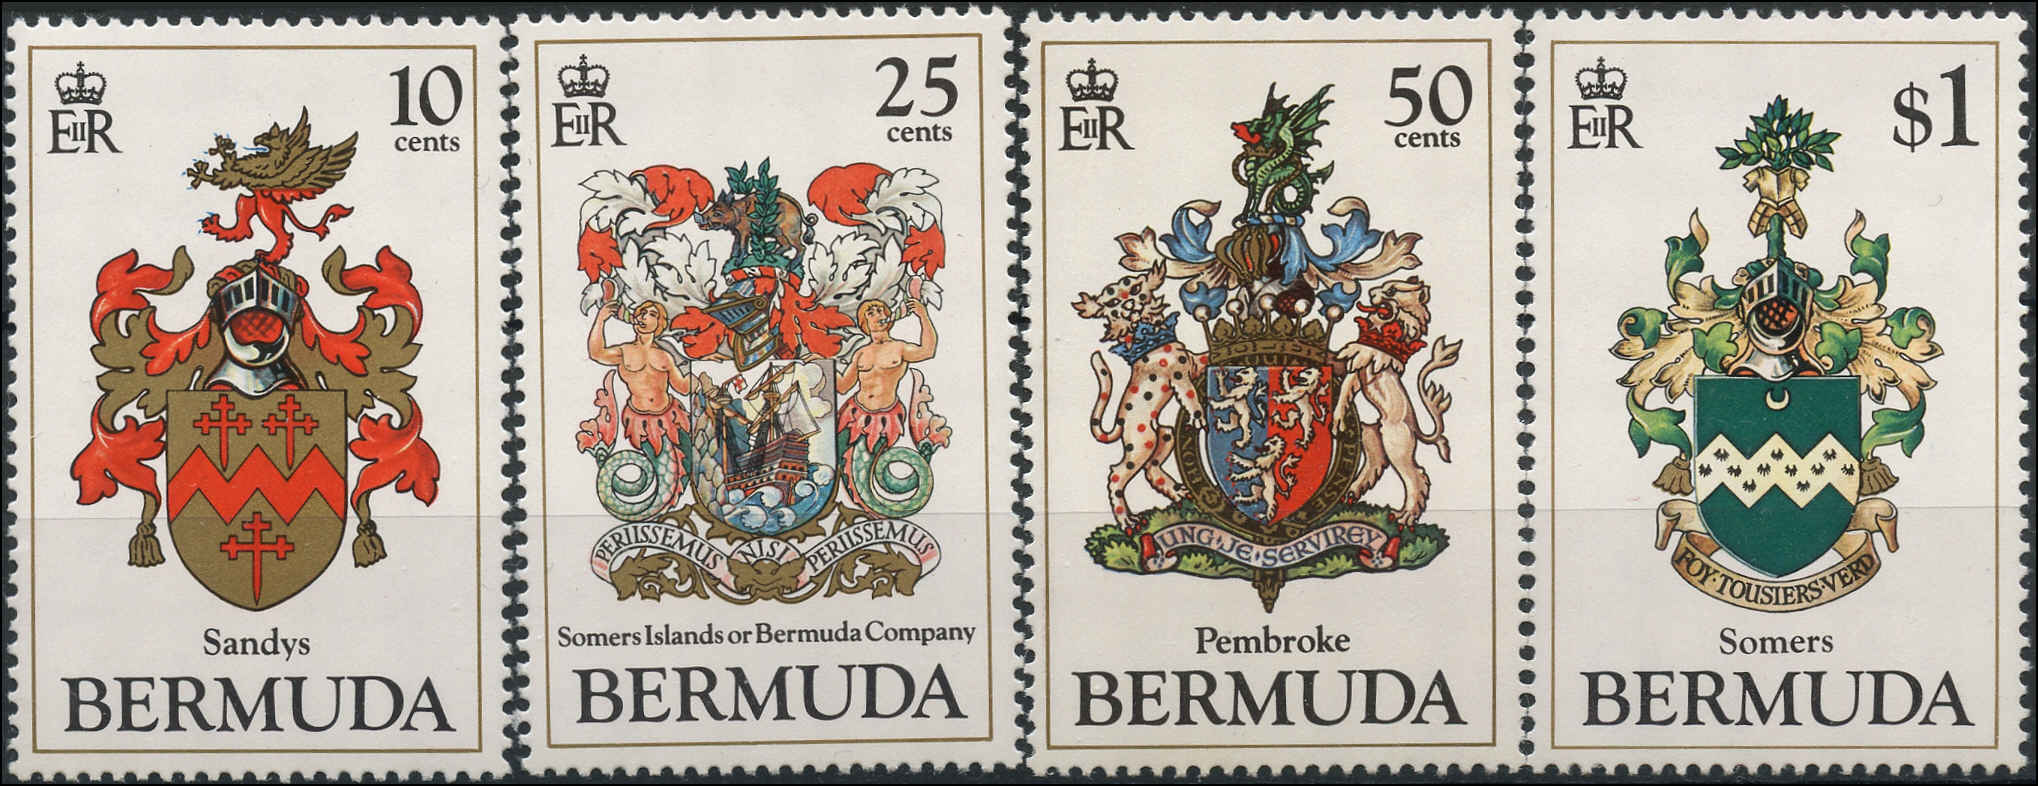 Bermuda Stamp, Scott #433-36, F-VF, MNH